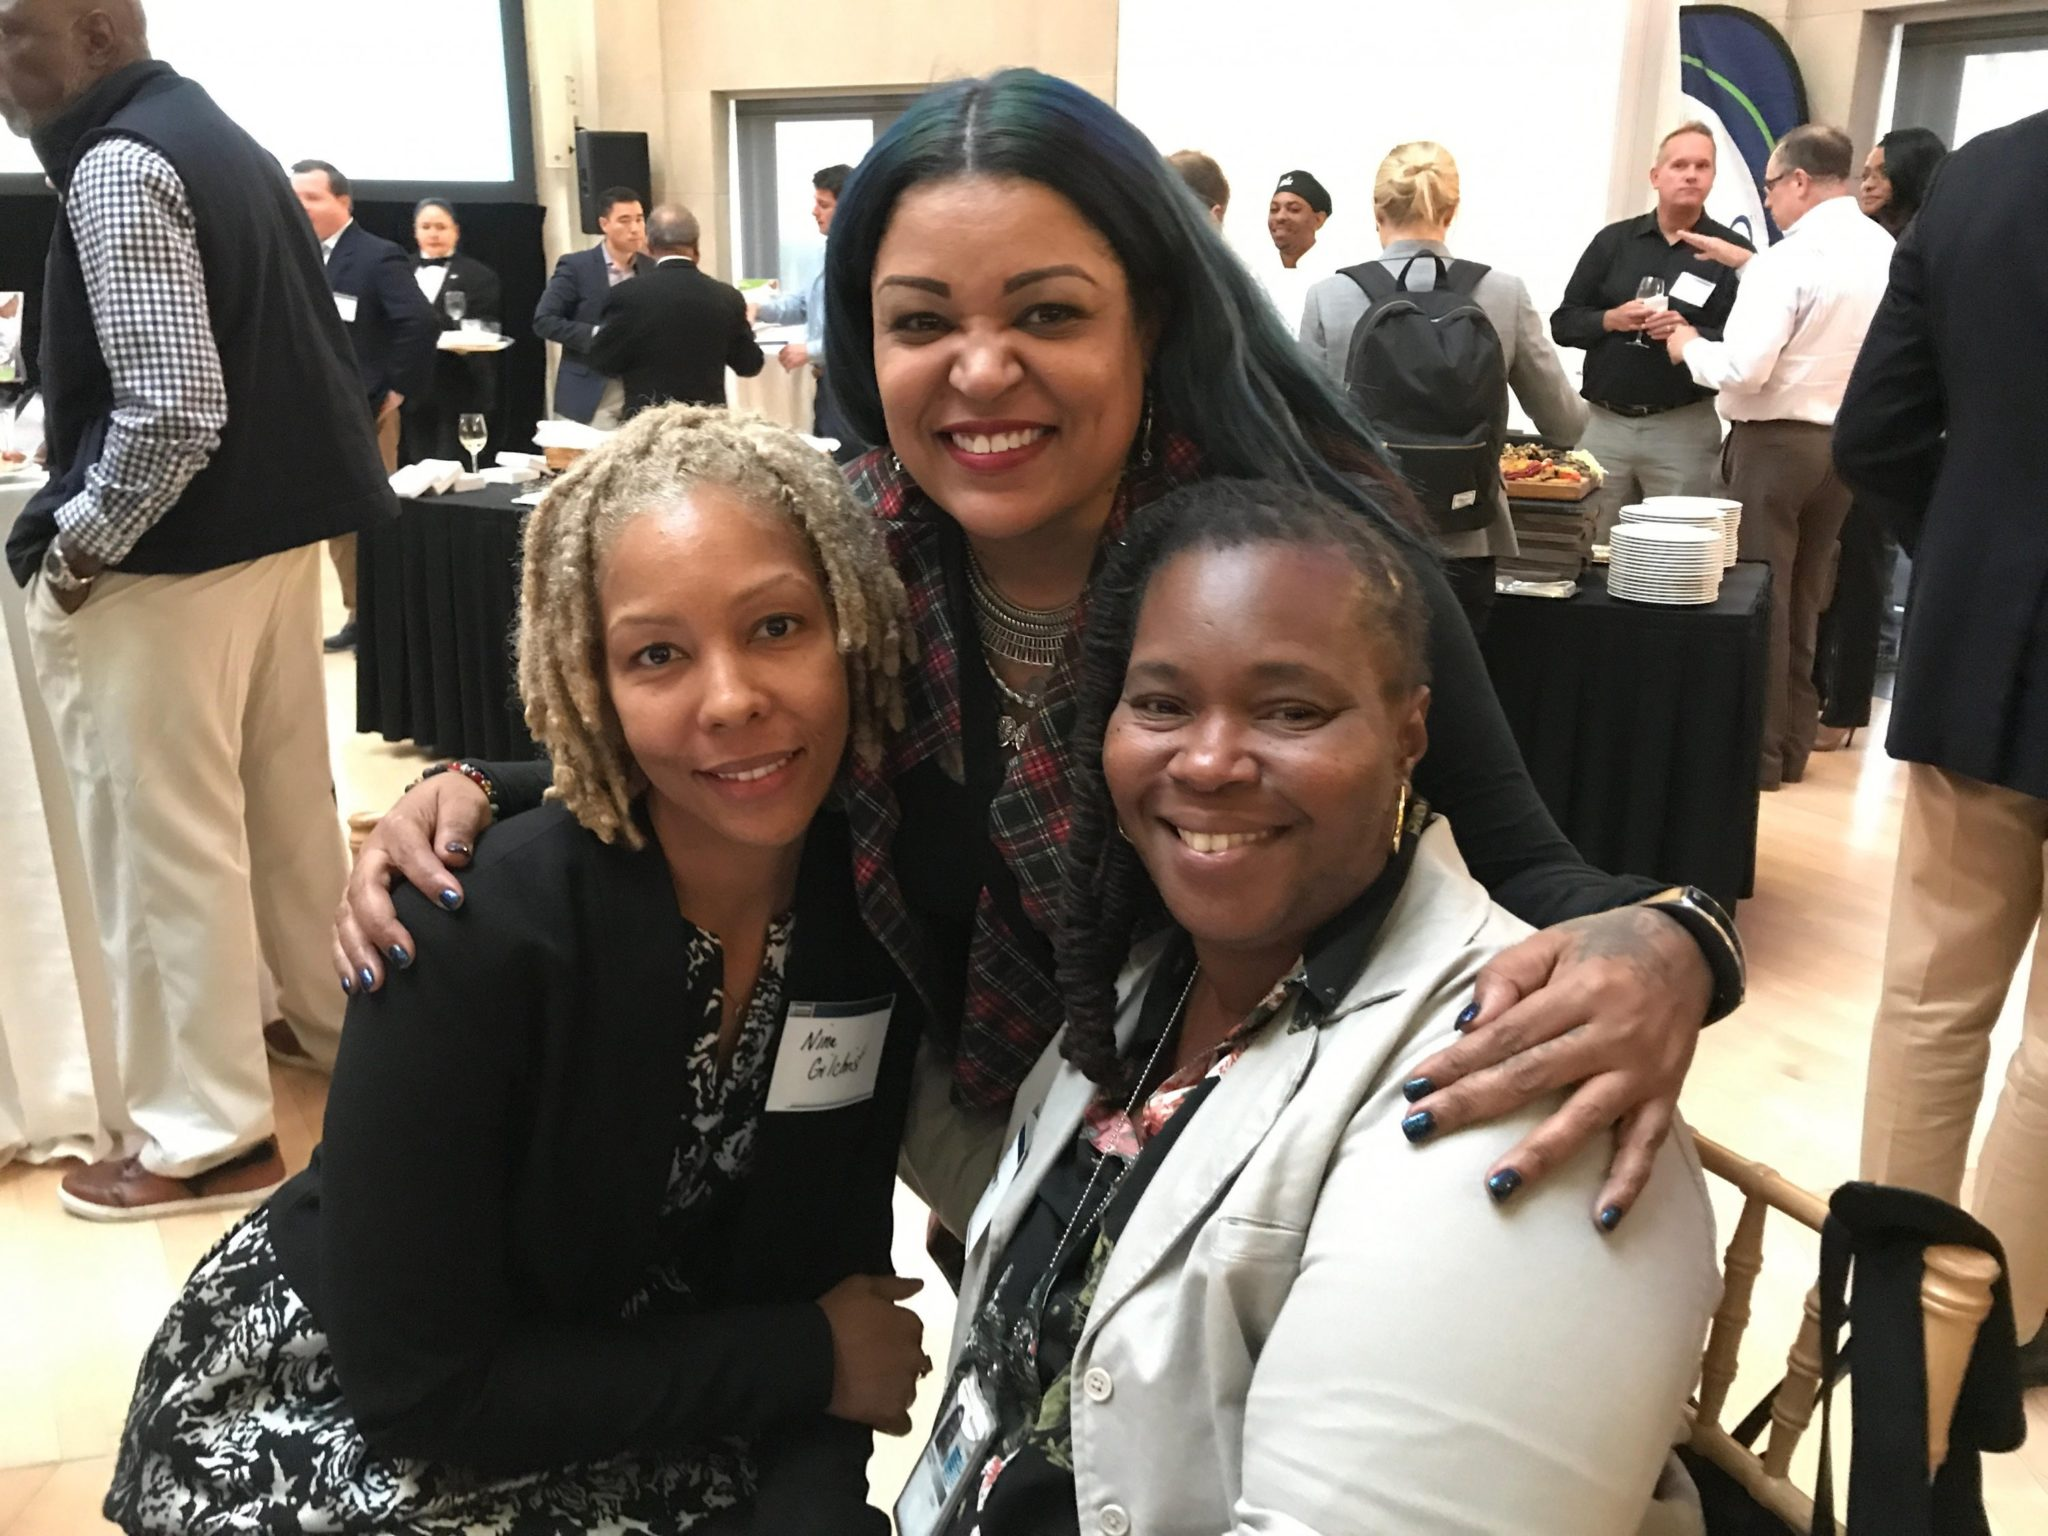 Nina Gilchrist, Chef Lozita King, and Dione Simmons (left to right) pose at the RAMW event where ProStart was announced.